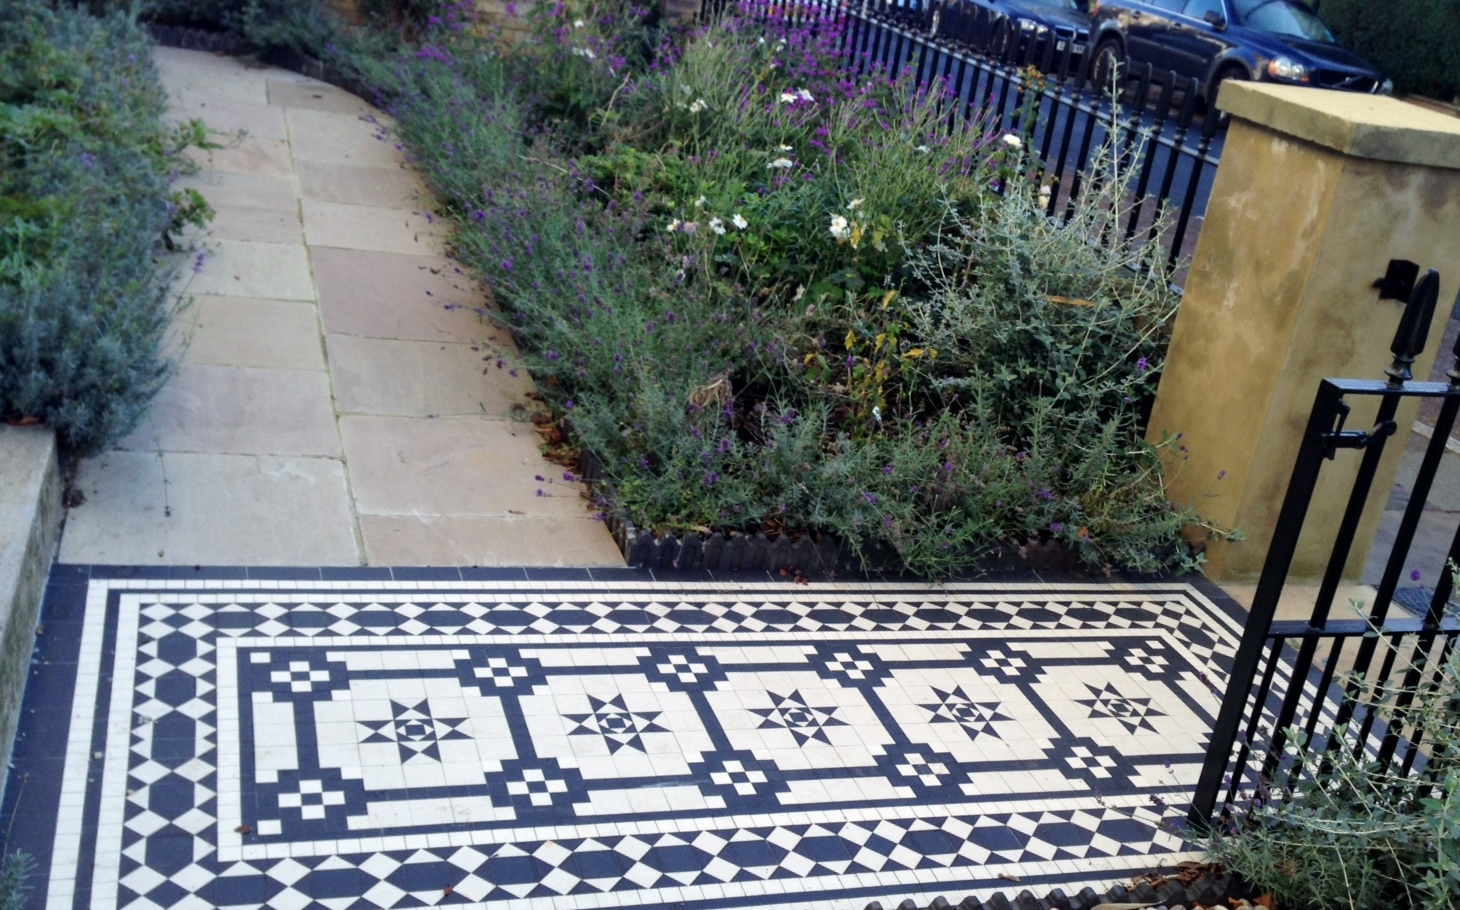 Islington Victorian mosaic tile path York stone sandstone paving wrought iron rails and gate London (18)